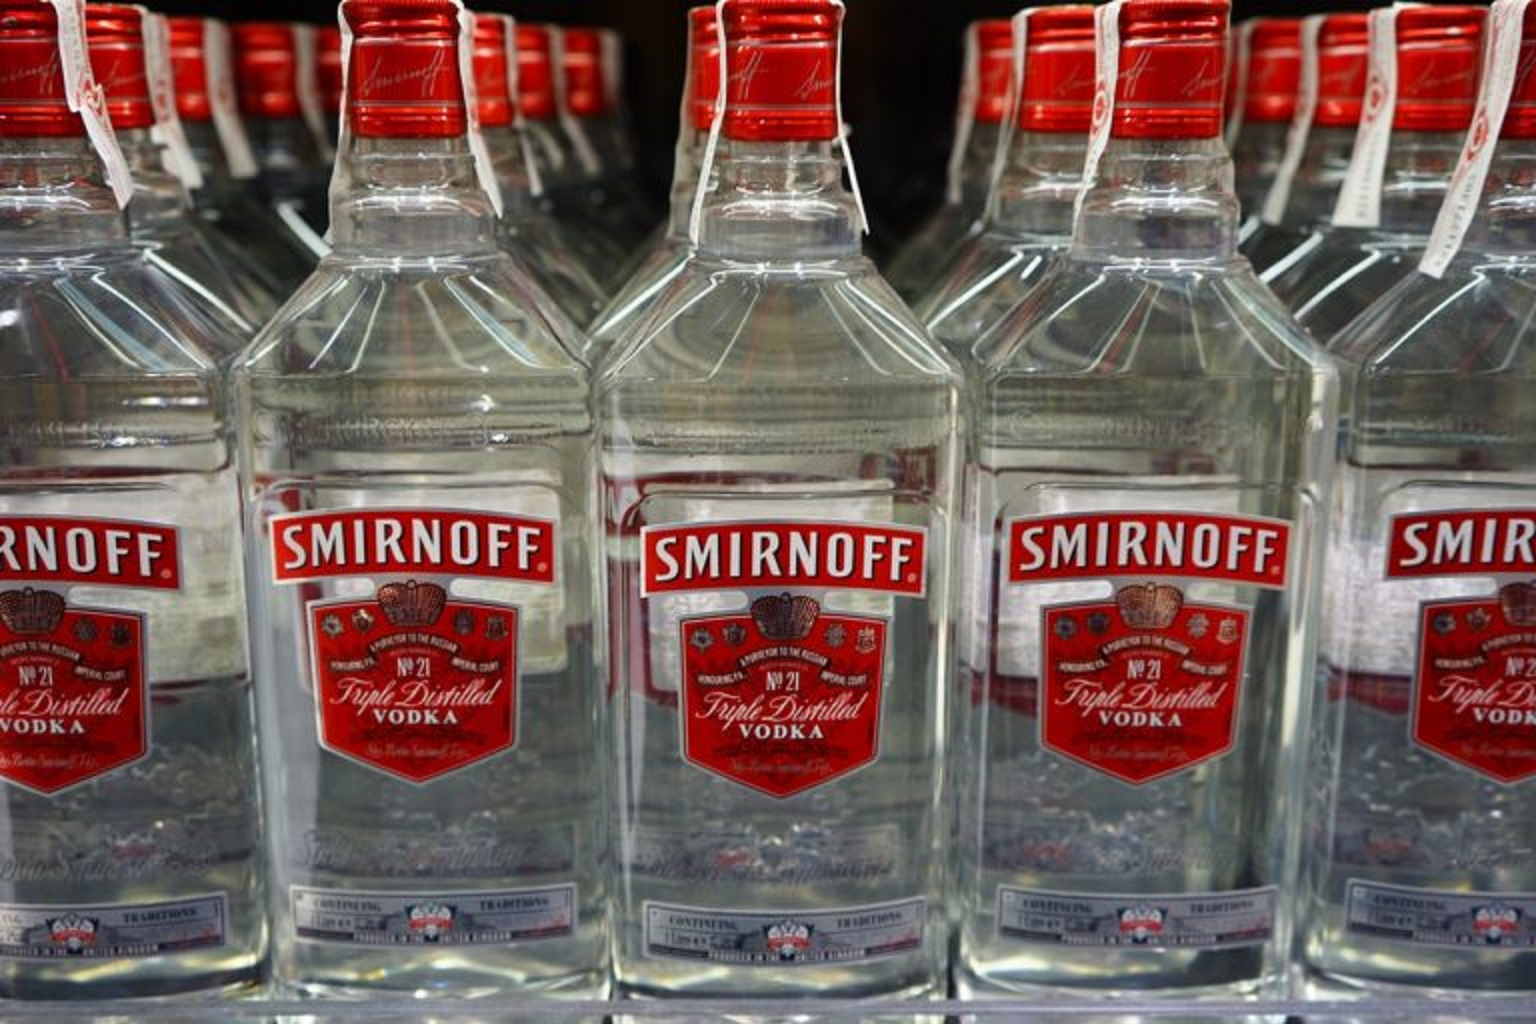 Fake Vodka That Can Cause Blindness And Death Found In Fife Shop And Pub photo